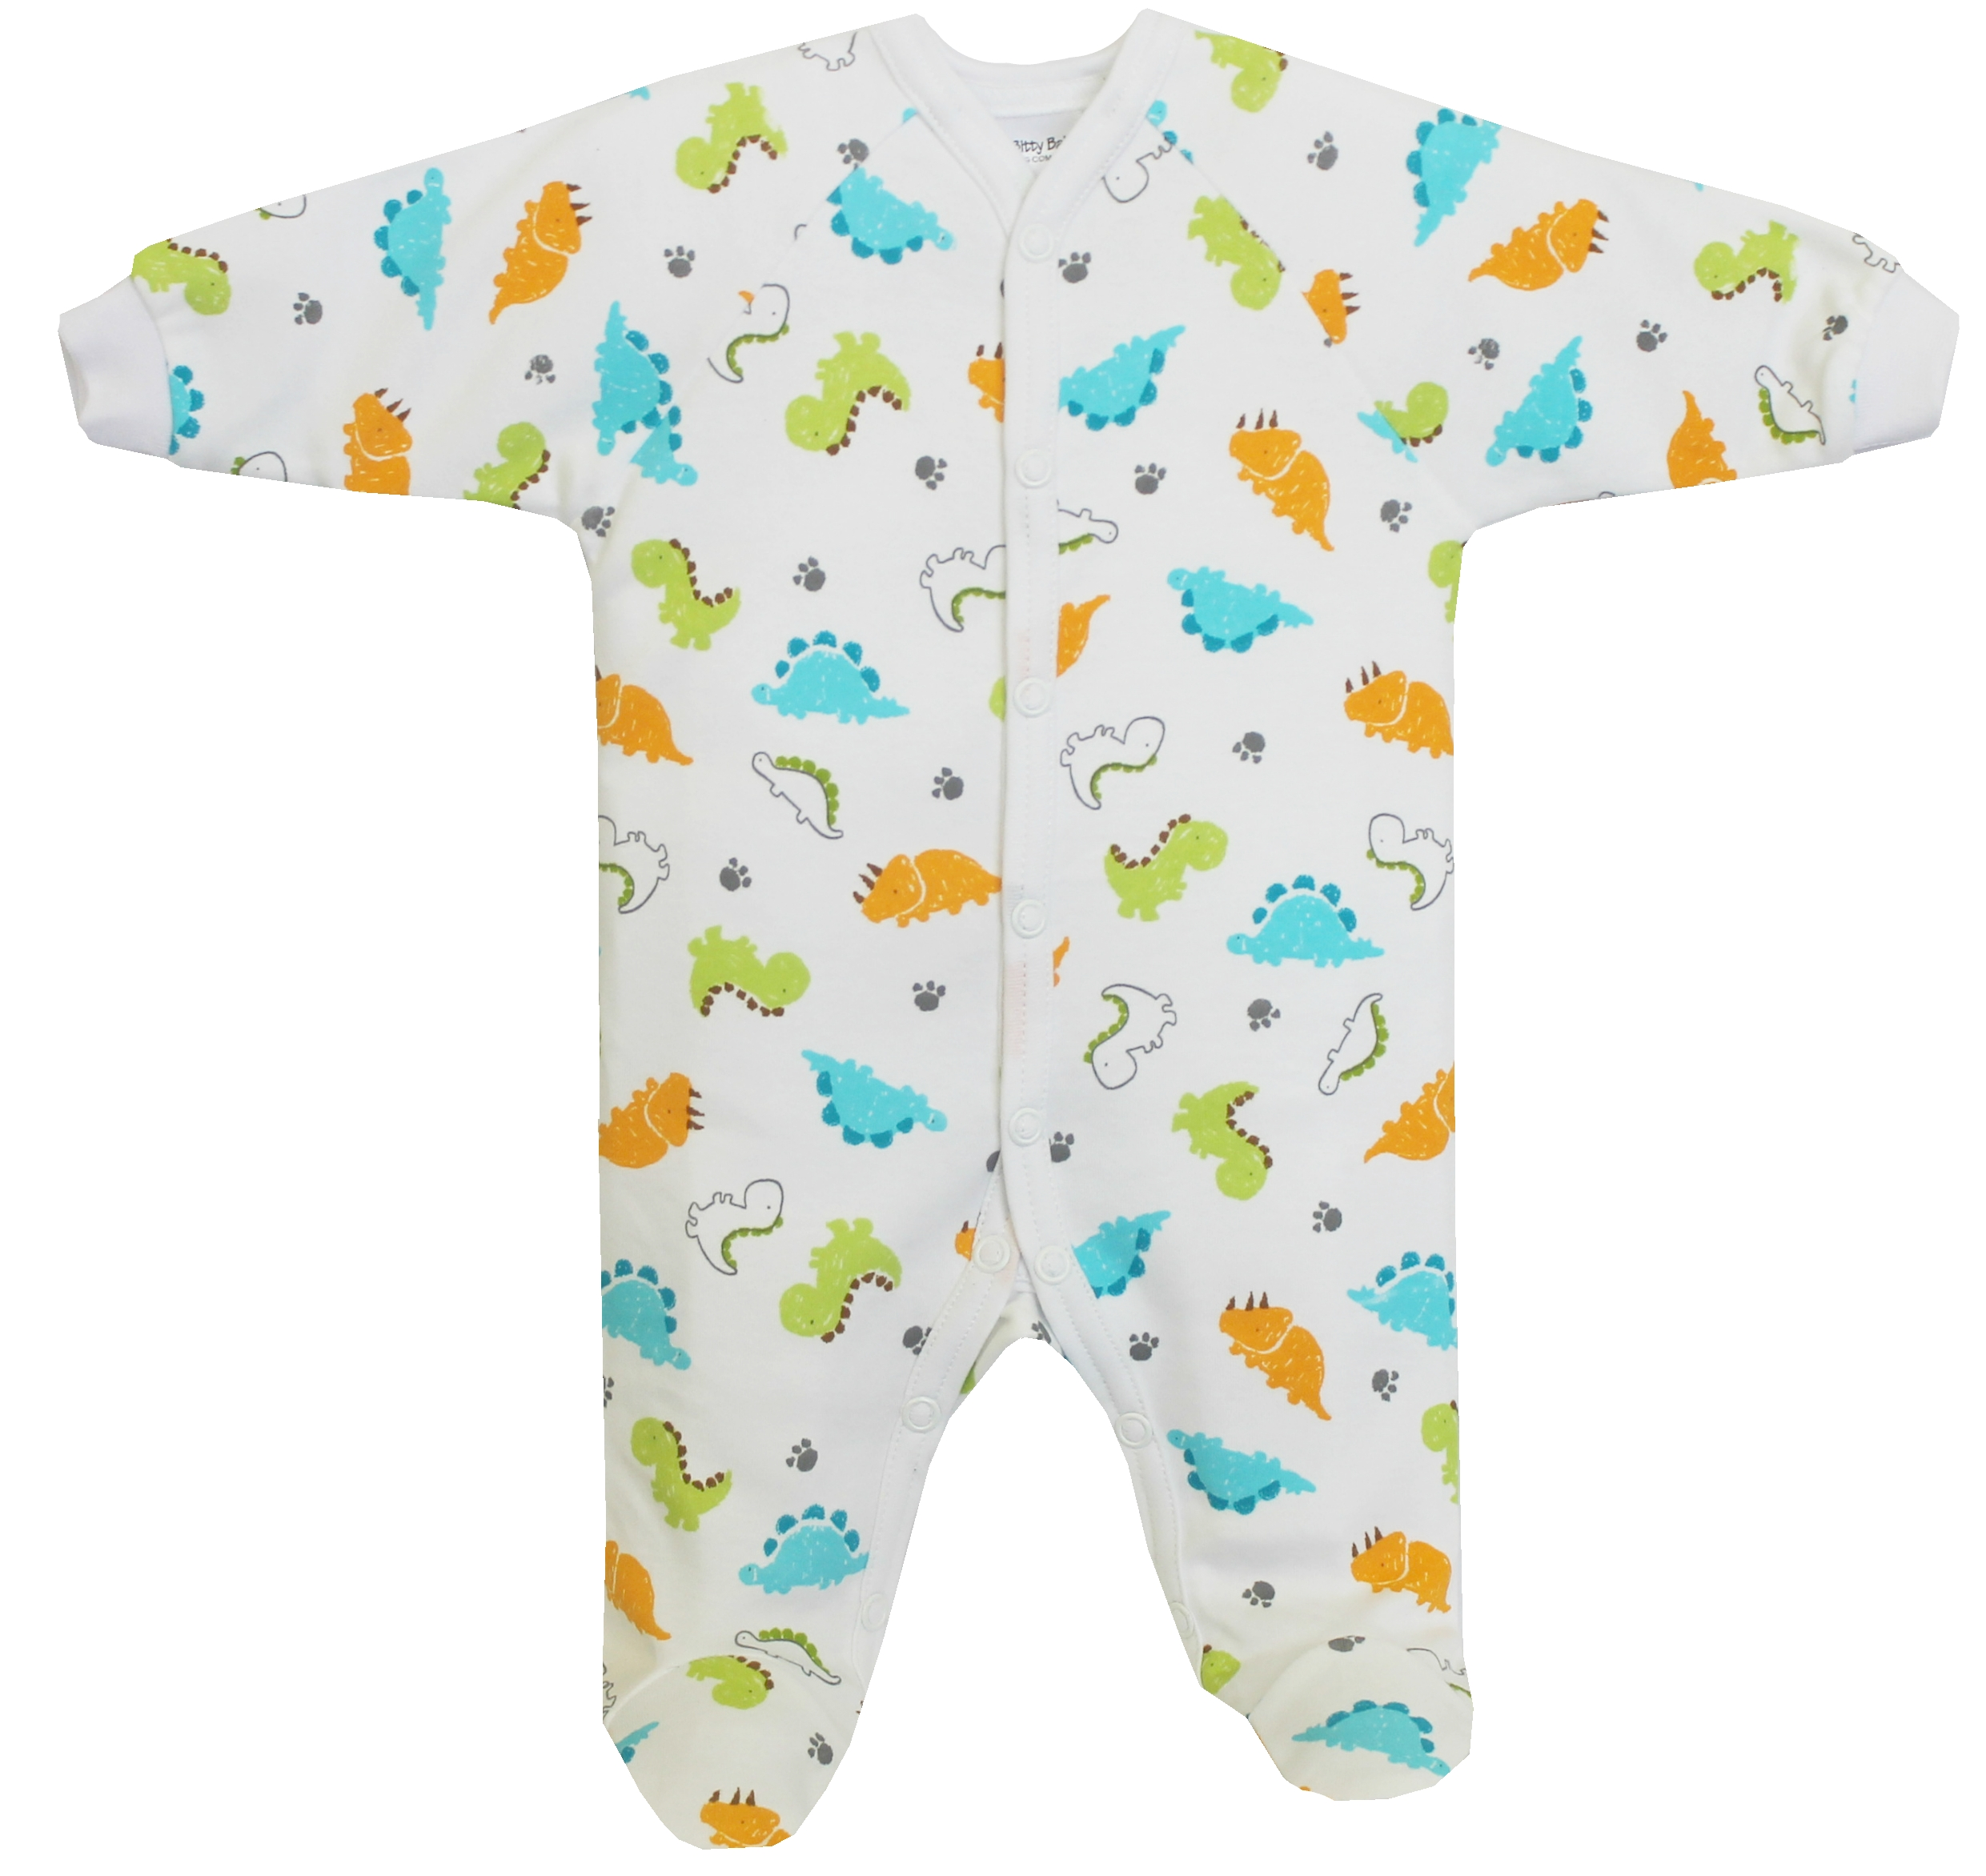 Itty Bitty Baby Clothing pany Canada Baby Clothing